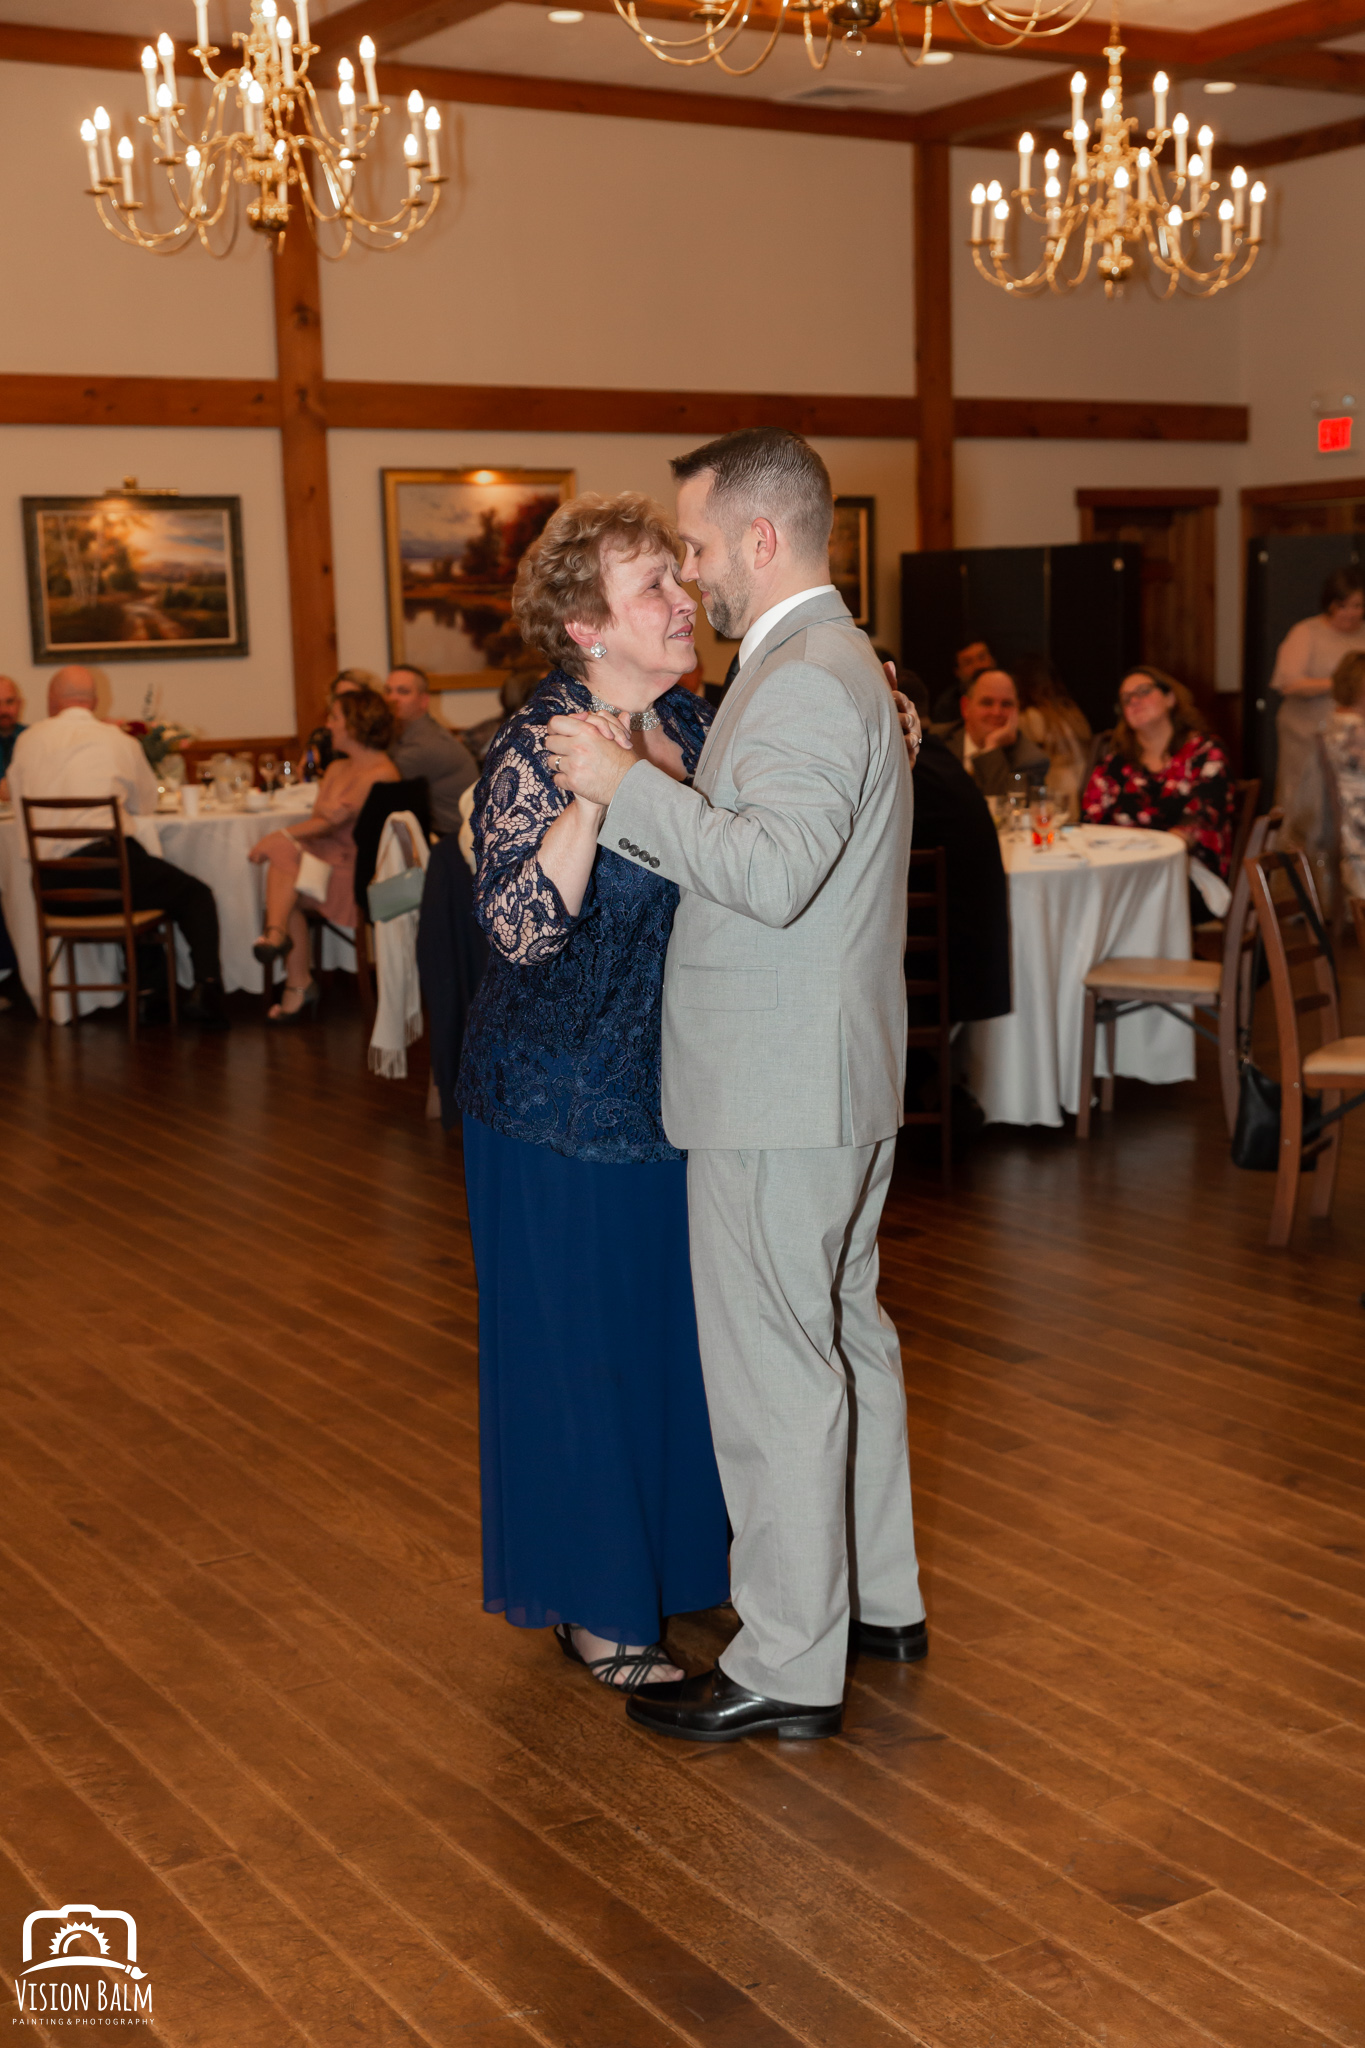 Wedding photo of groom and his mother dancing in the venue of Zuka's Hilltop Barn by Vision Balm in Charleston, SC.